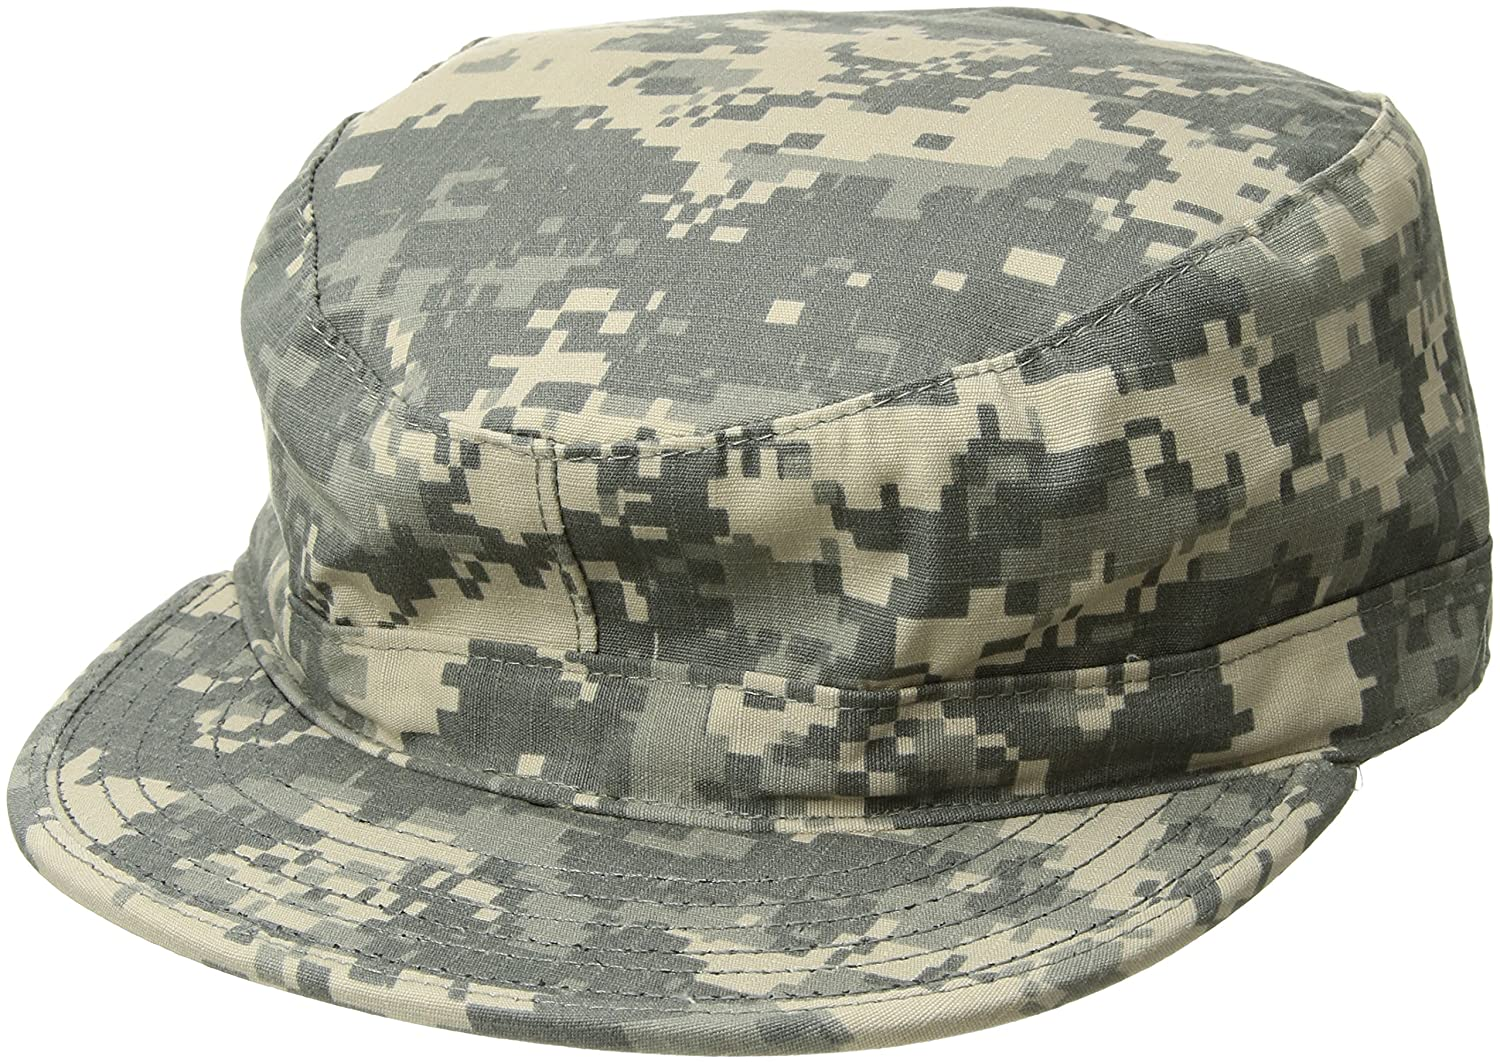 Propper ACU Patrol Cap F5571 with Map Pocket